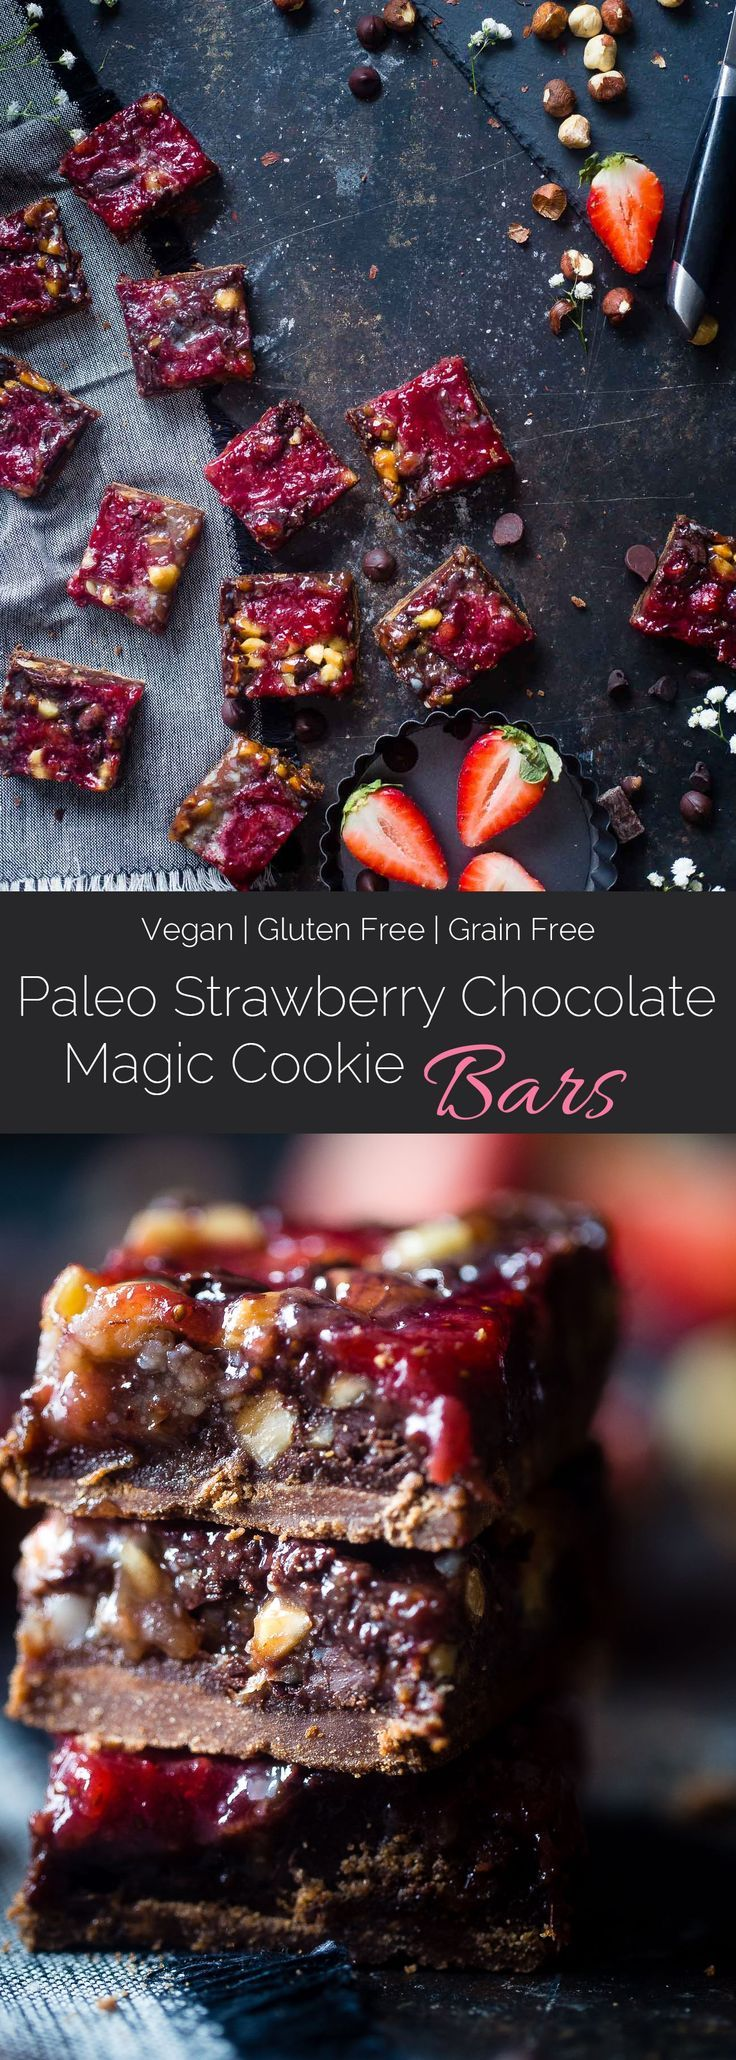 Strawberry Chocolate Paleo Magic Cookie Bars - These magic cookie bars have a sweet strawberry swirl and are SO easy to make! They're a healthy, vegan friendly and gluten free remake of the classic recipe that everyone will love! | http://Foodfaithfitness.com | /FoodFaithFit/